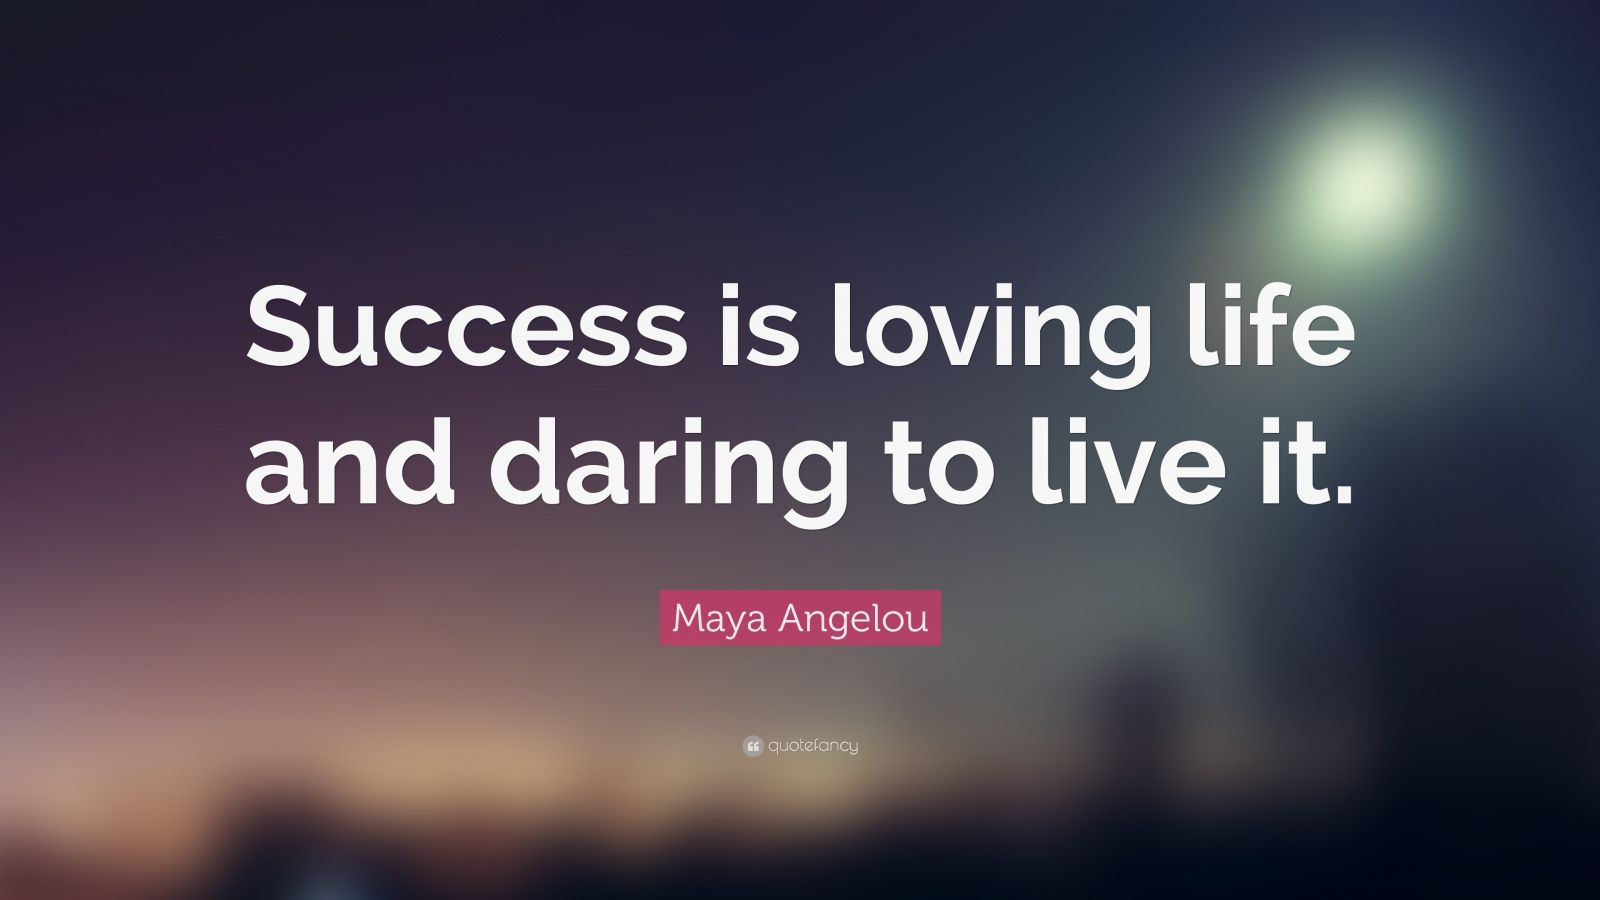 Love Quotes Maya Angelou Maya Angelou Success Quote  Inspiring Quotes And Words In Life